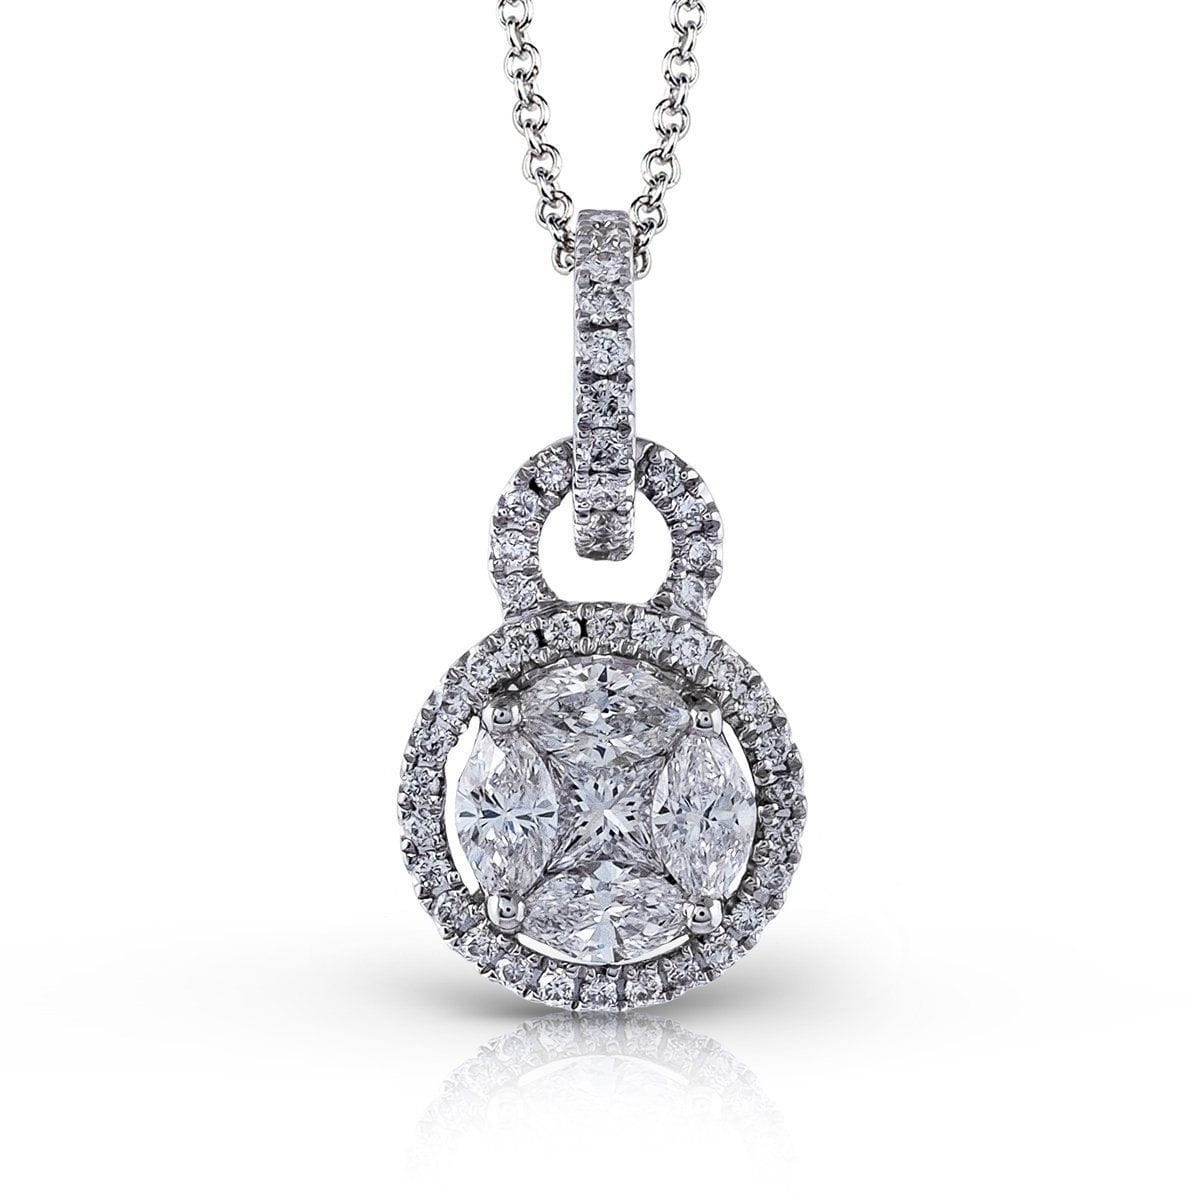 White Gold & Diamond Pendant - MP1507-W-Simon G.-Renee Taylor Gallery